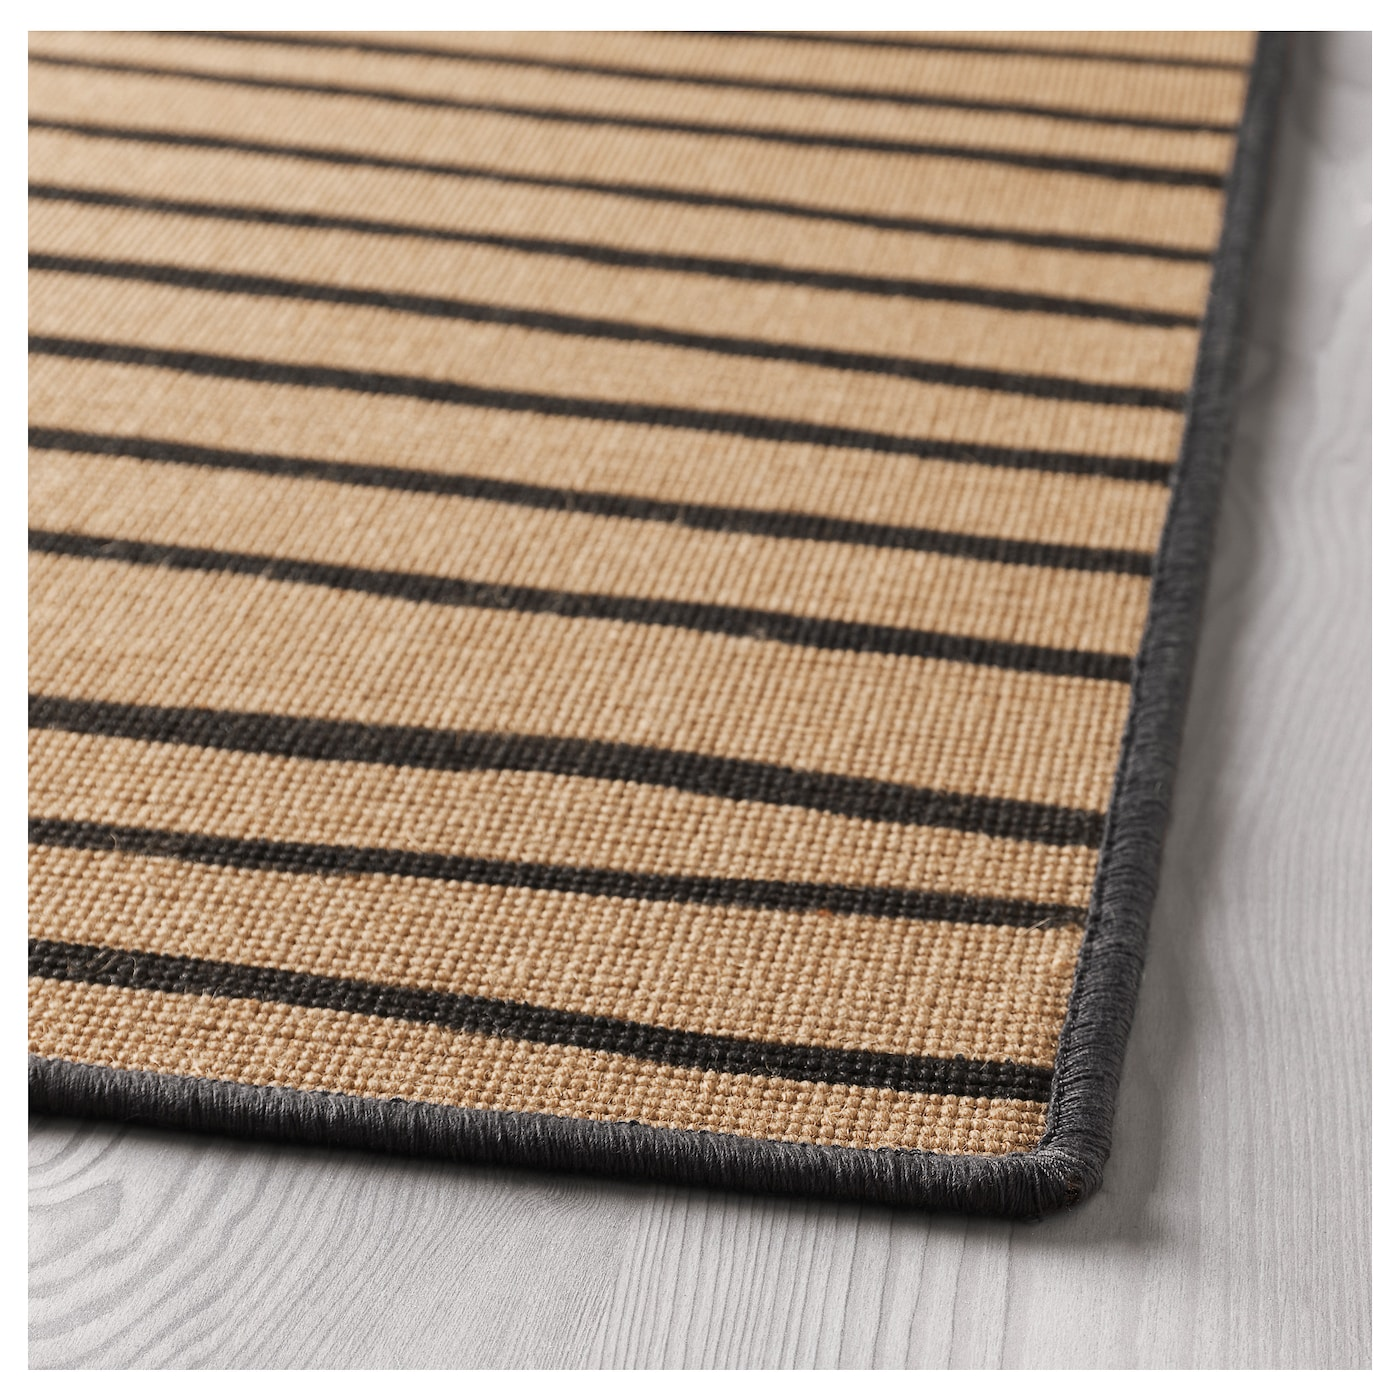 IKEA VINTER 2017 rug, flatwoven Easy to vacuum thanks to its flat surface.